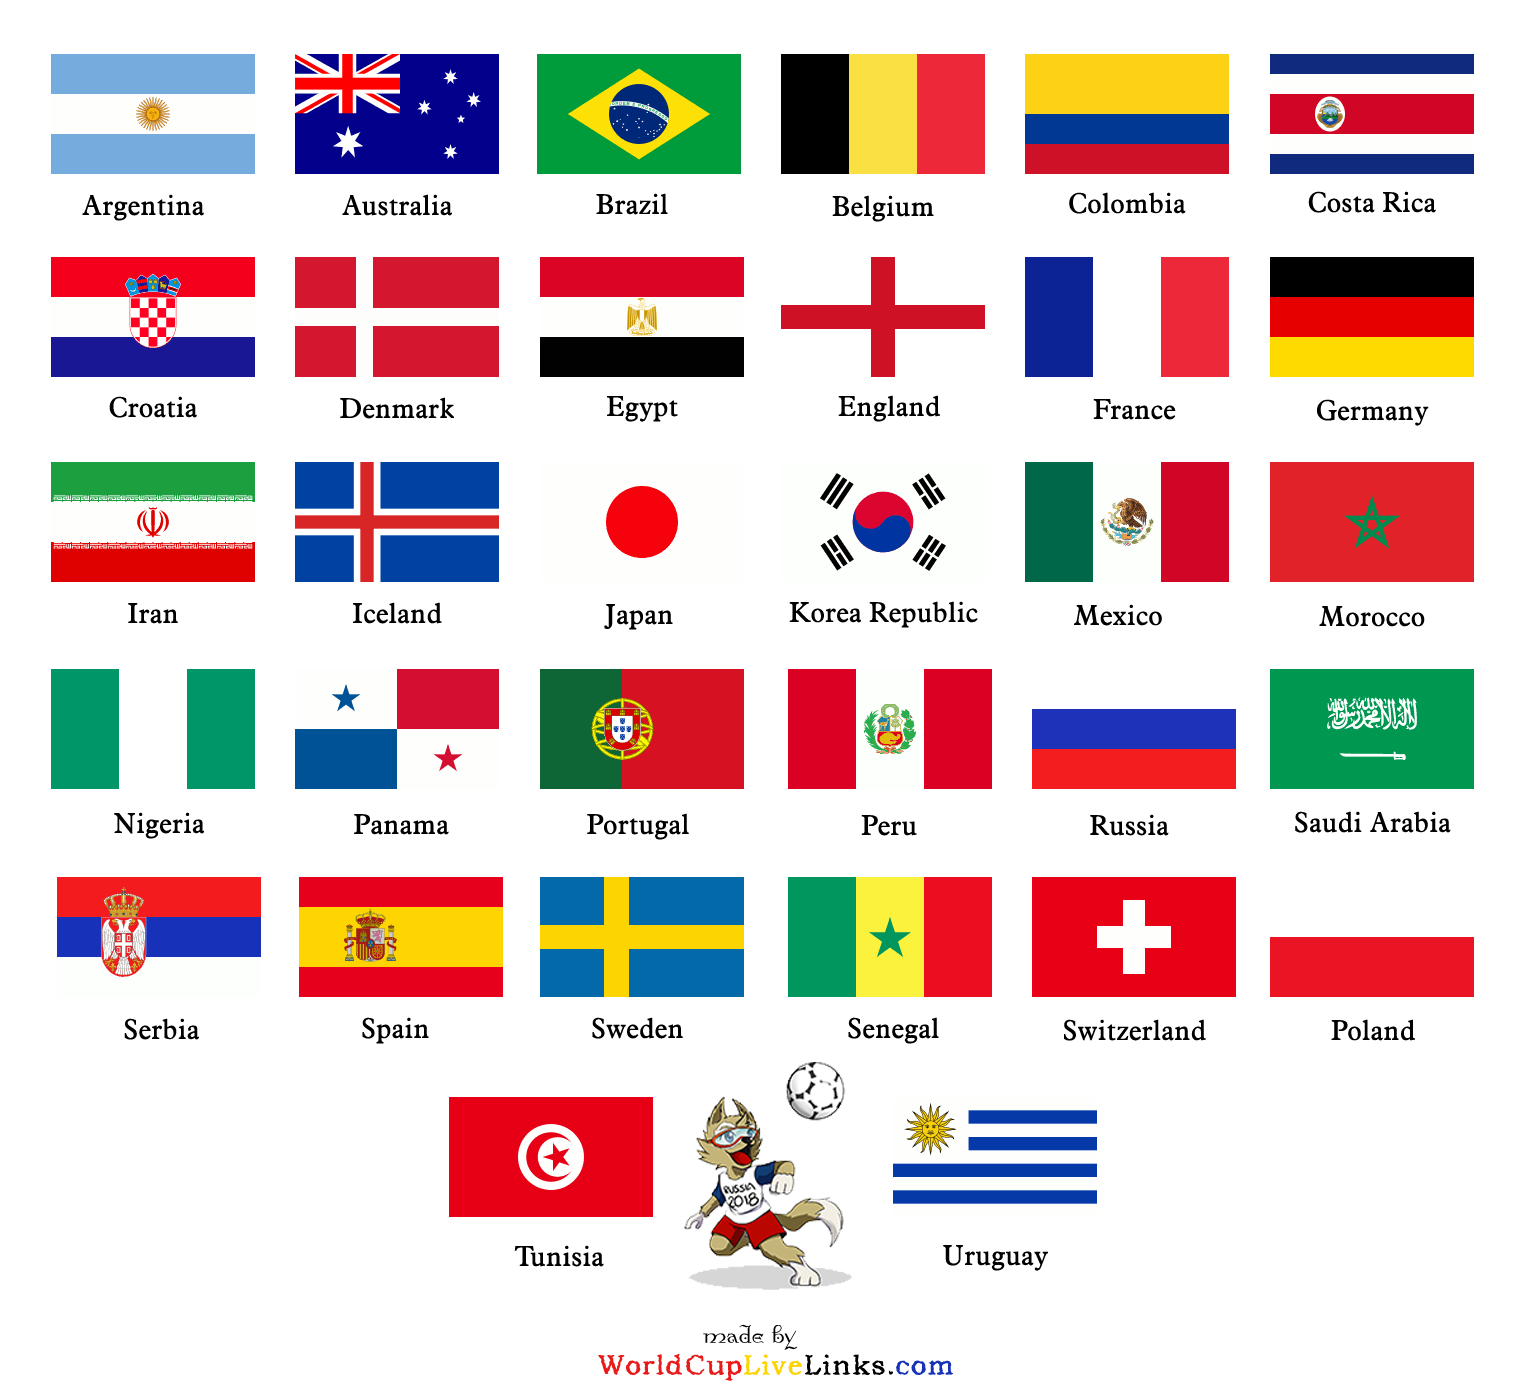 qualified teams of fifa world cup 2018